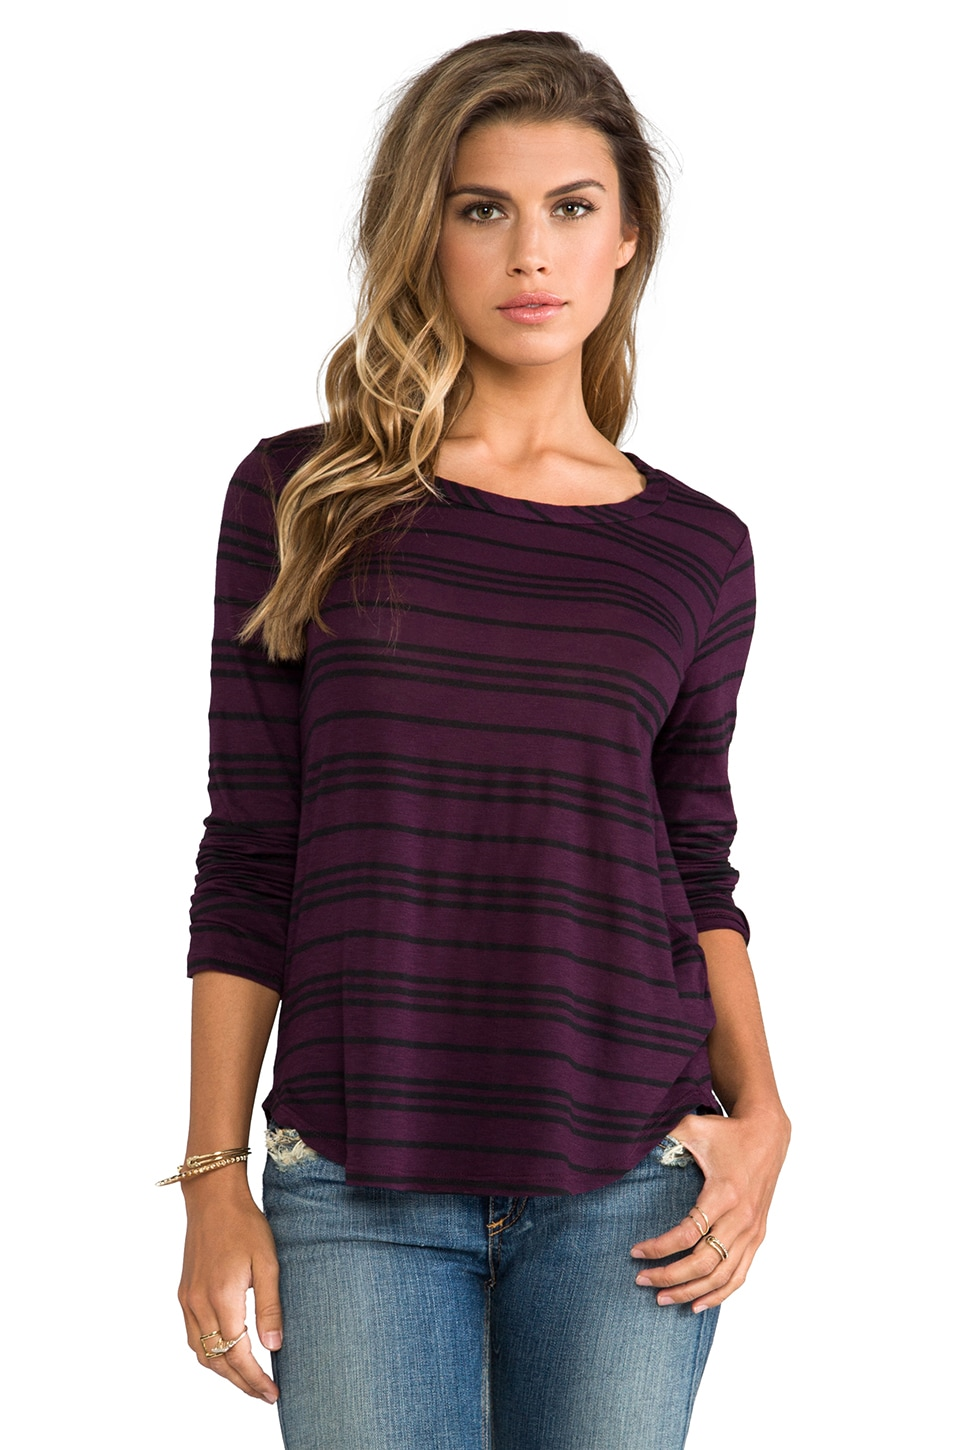 Splendid Stockholm Stripe Long Sleeve Tee in Eggplant/Black